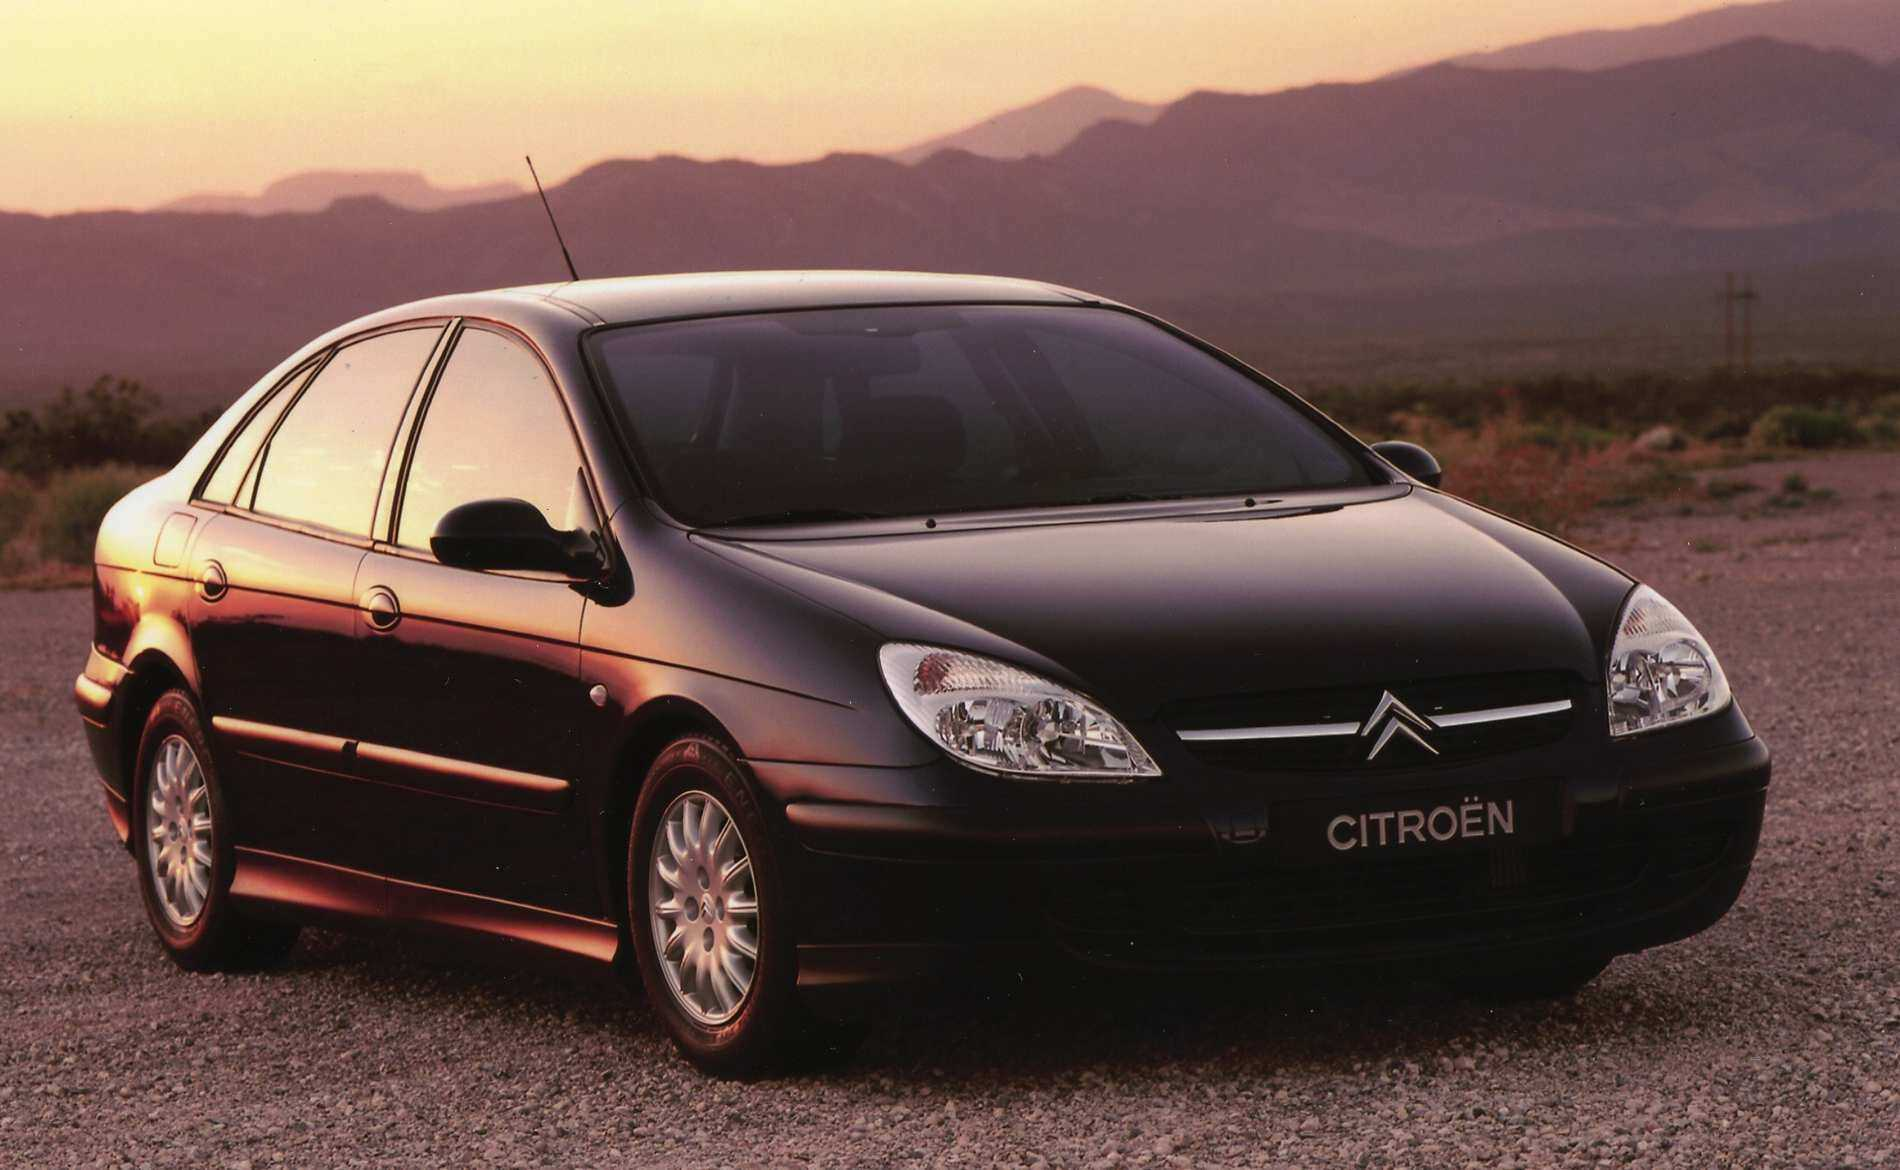 Citroen C5 2001 2008 Carzone Used Car Buying Guides